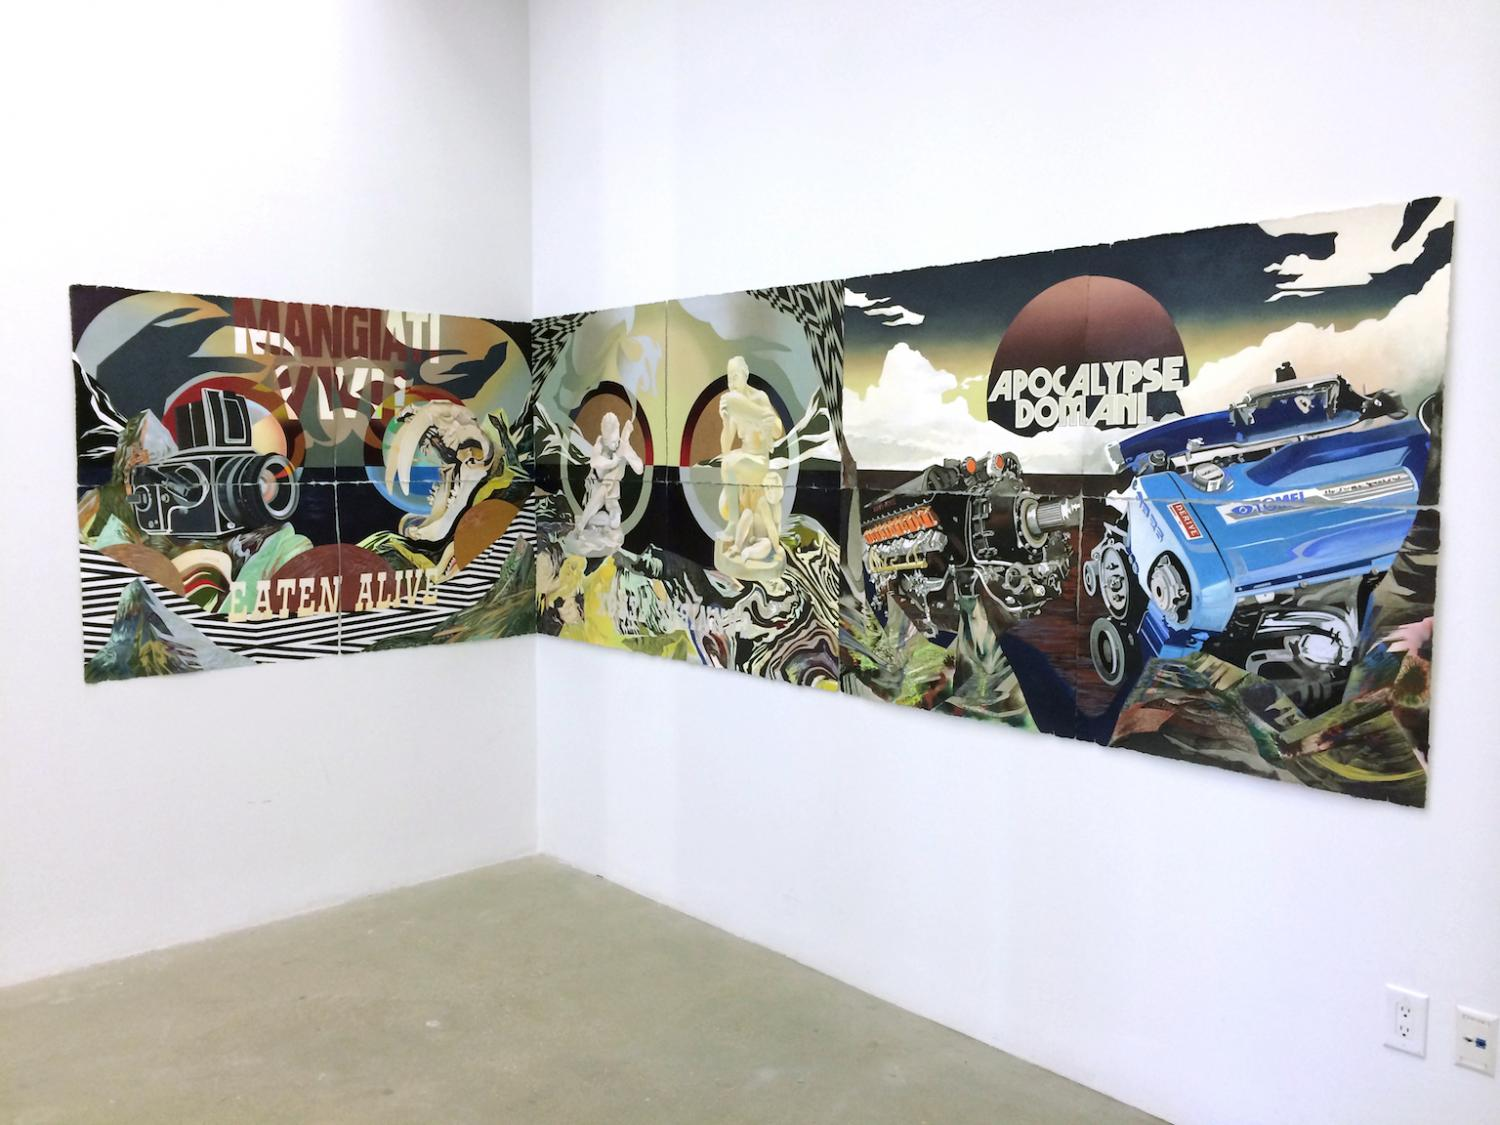 Three connected panels of art installed around the interior corner of a gallery. They combine stylized classical images with modern technology like cameras and a jeep, with a hybrid english/latin text overlay.